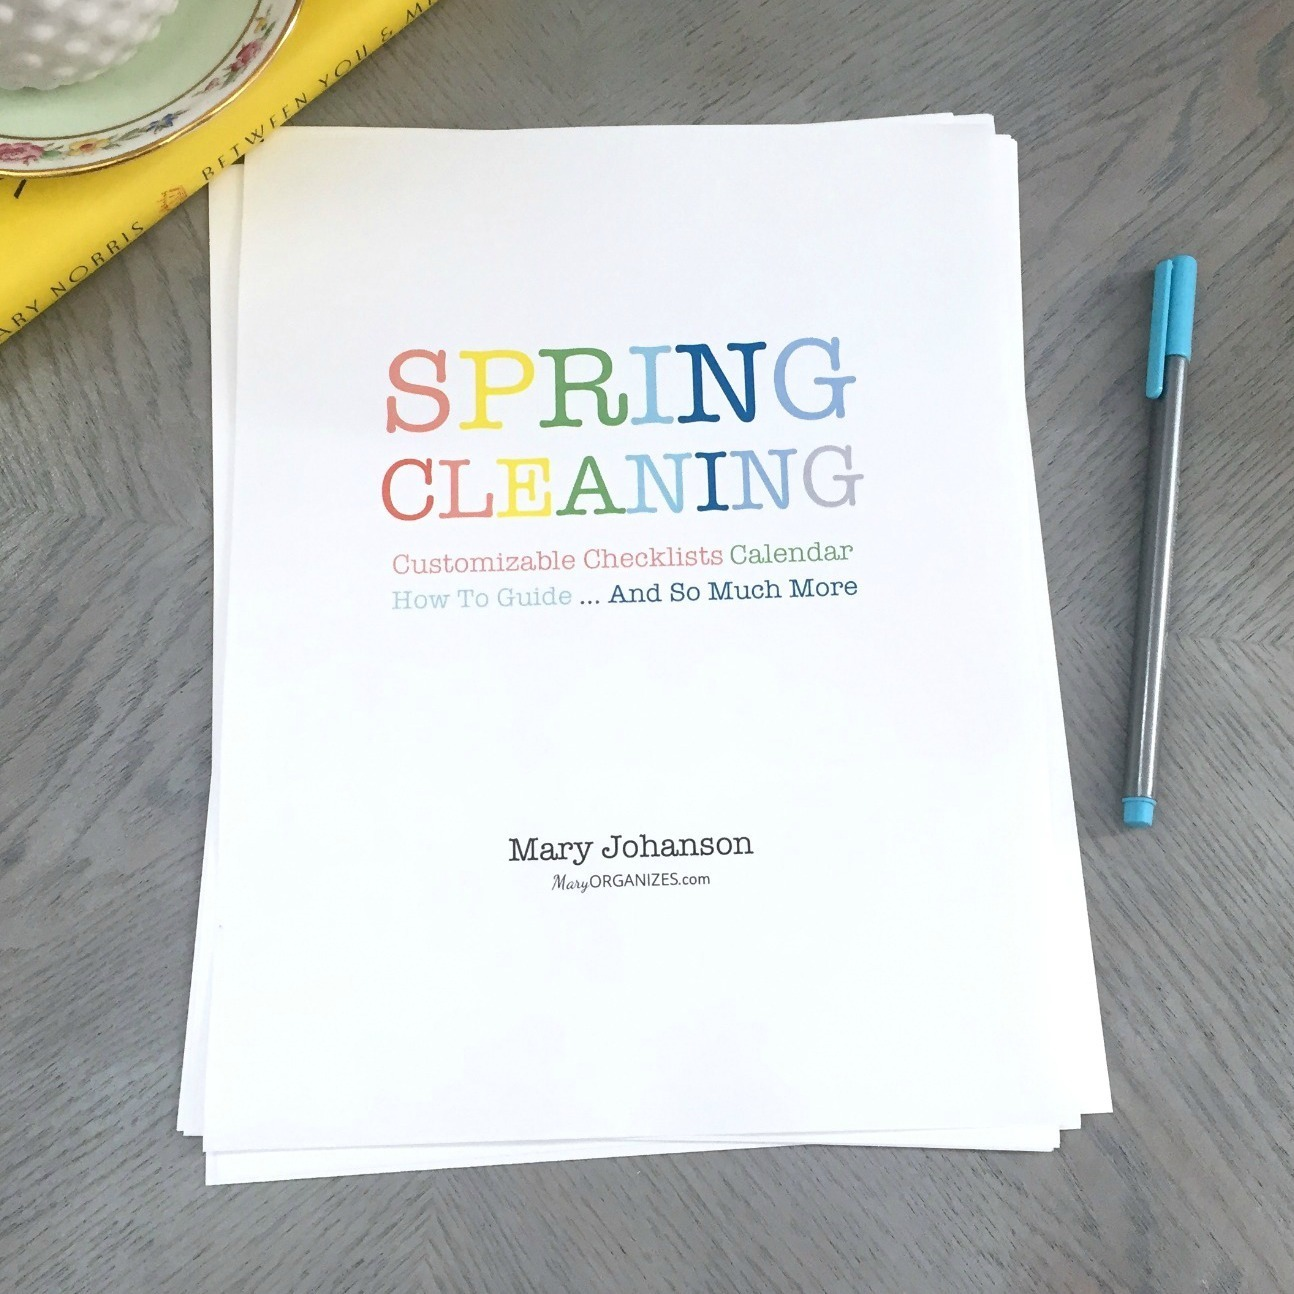 Spring Cleaning Pack: Calendar, Checklists, and More (customizable) 00111